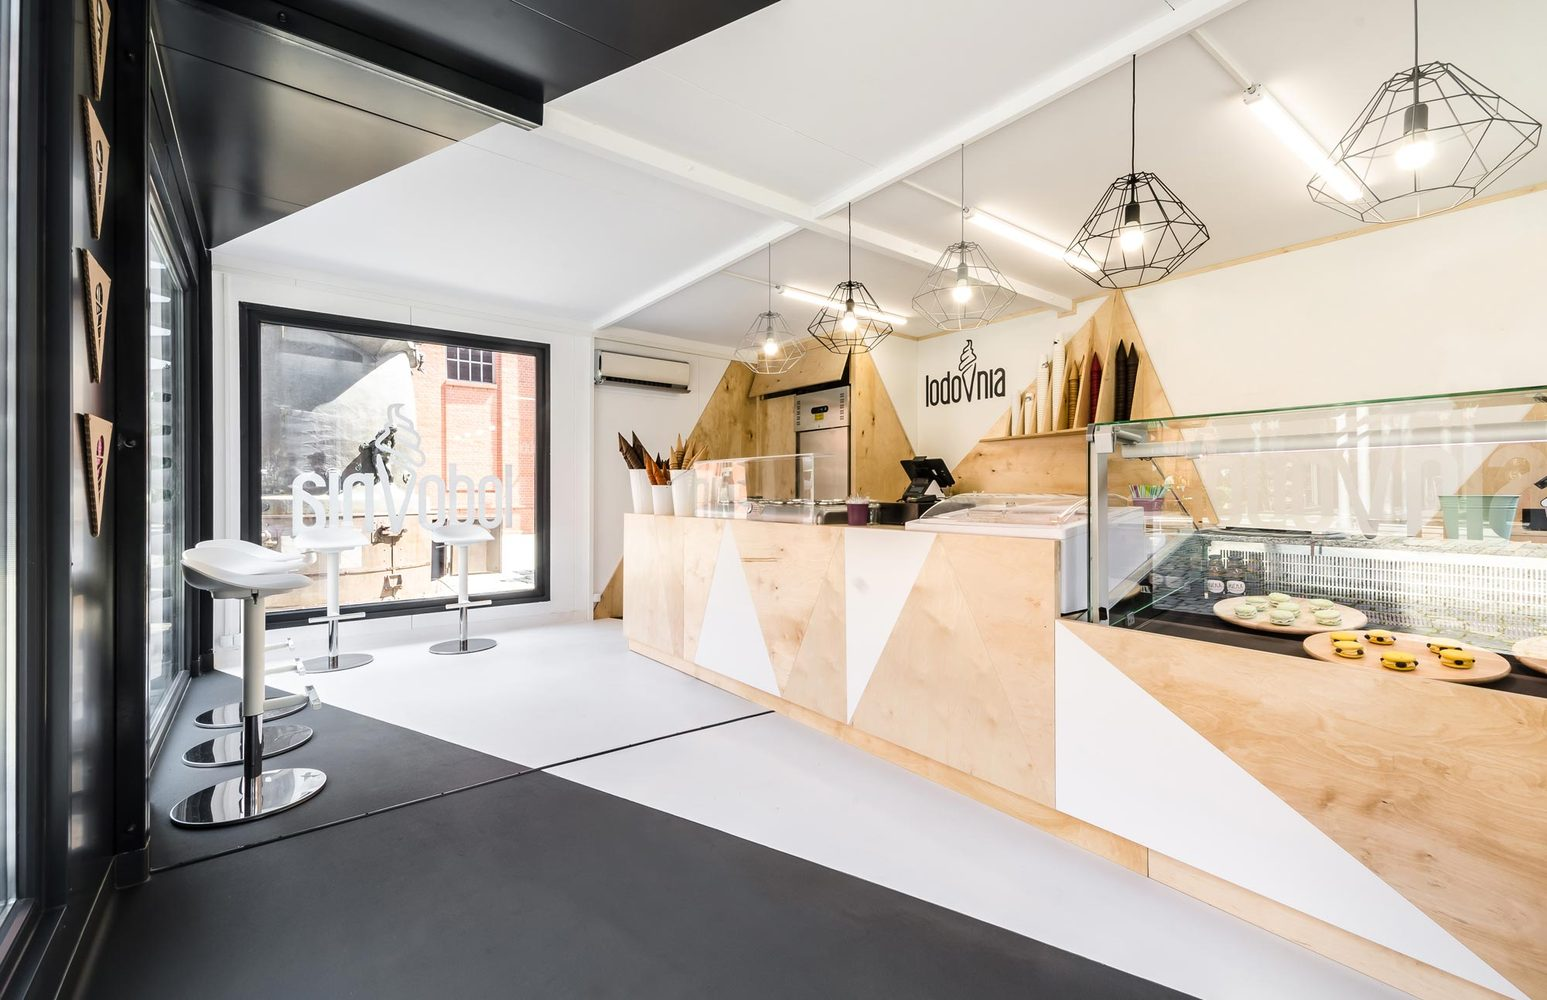 4_LODOVNIA Ice Cream Shop_mode lina architekci_Inspirationist